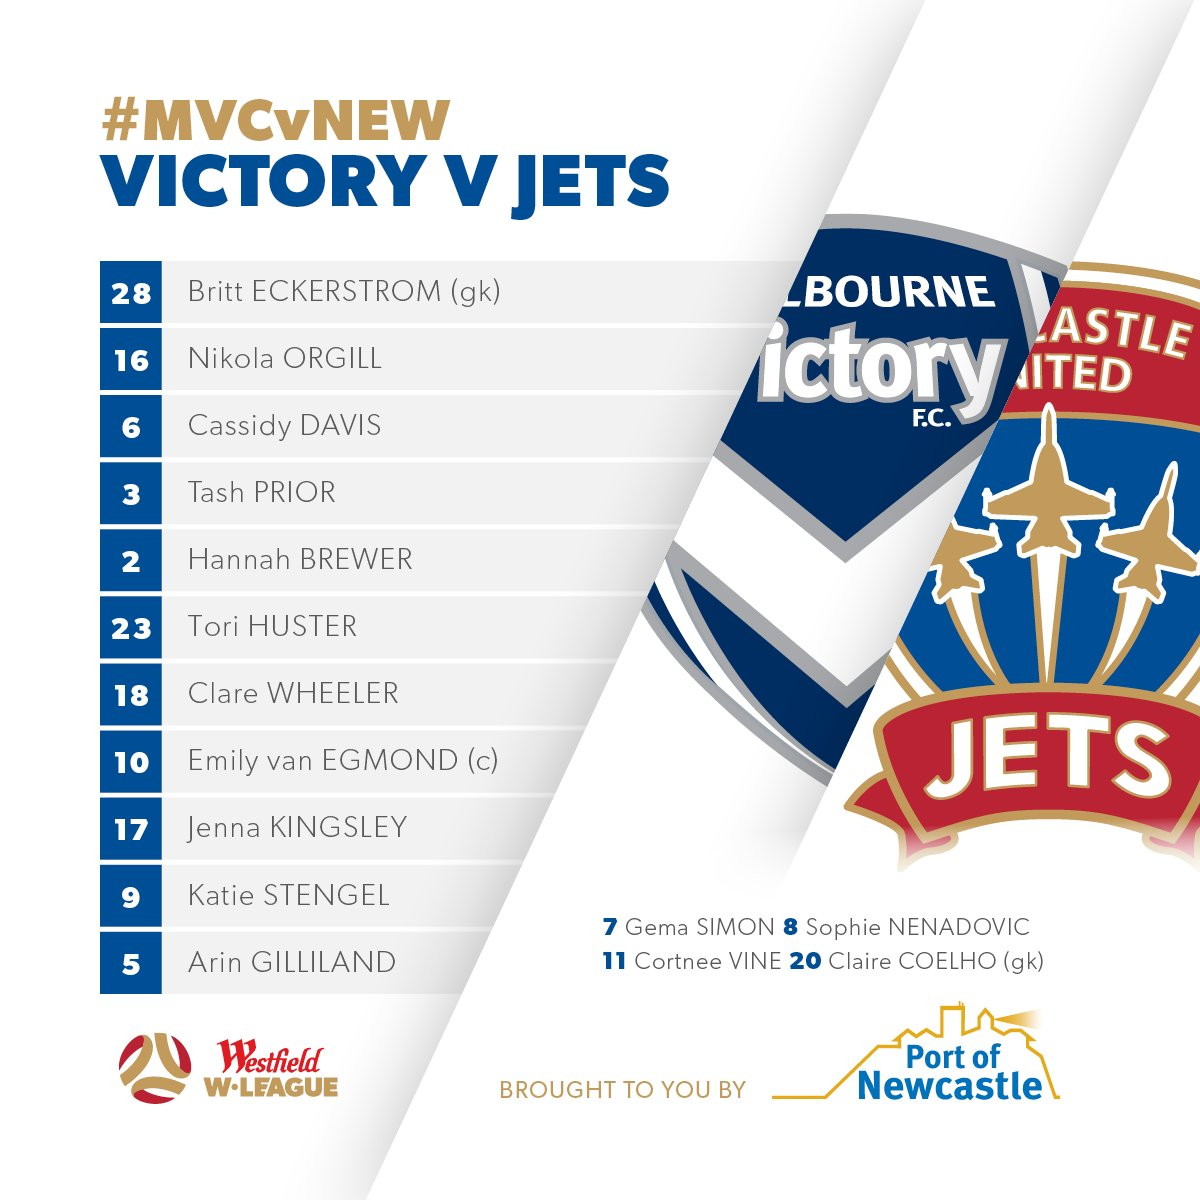 This afternoon's lineup, as Gema Simon returns from injury via the bench #WLeague #MVCvNEW